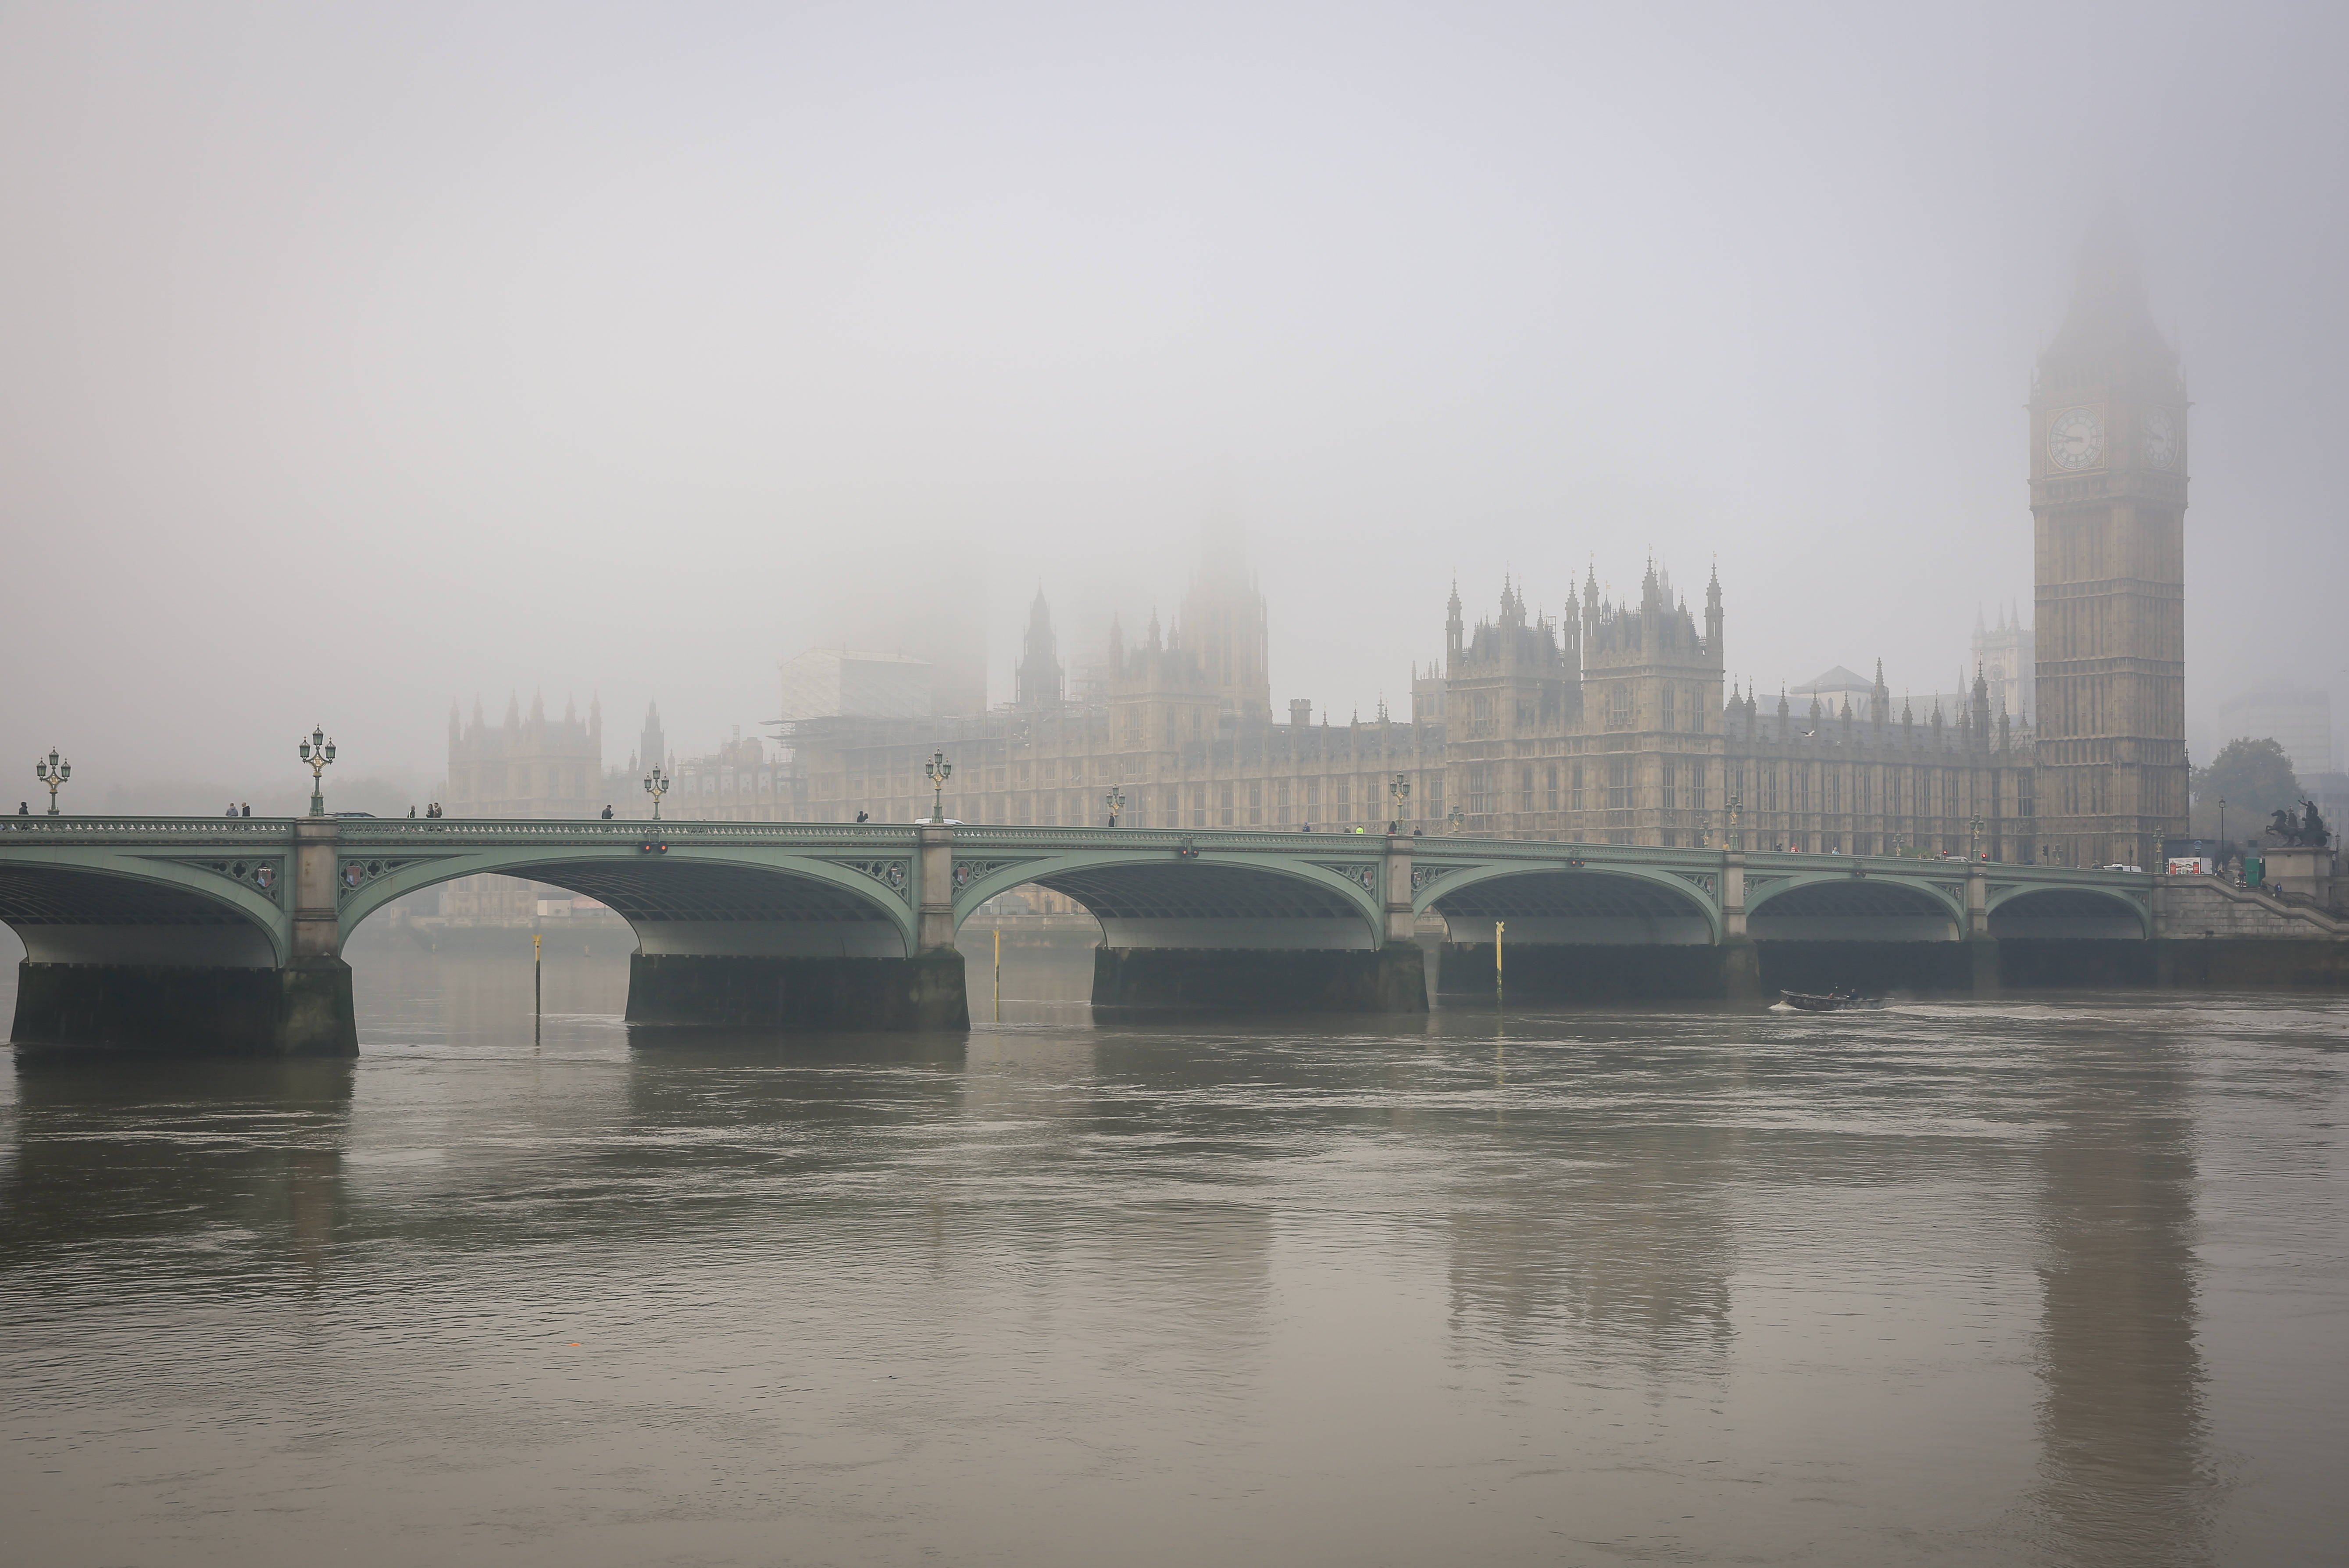 Big Ben and House of Parliament in London Fog